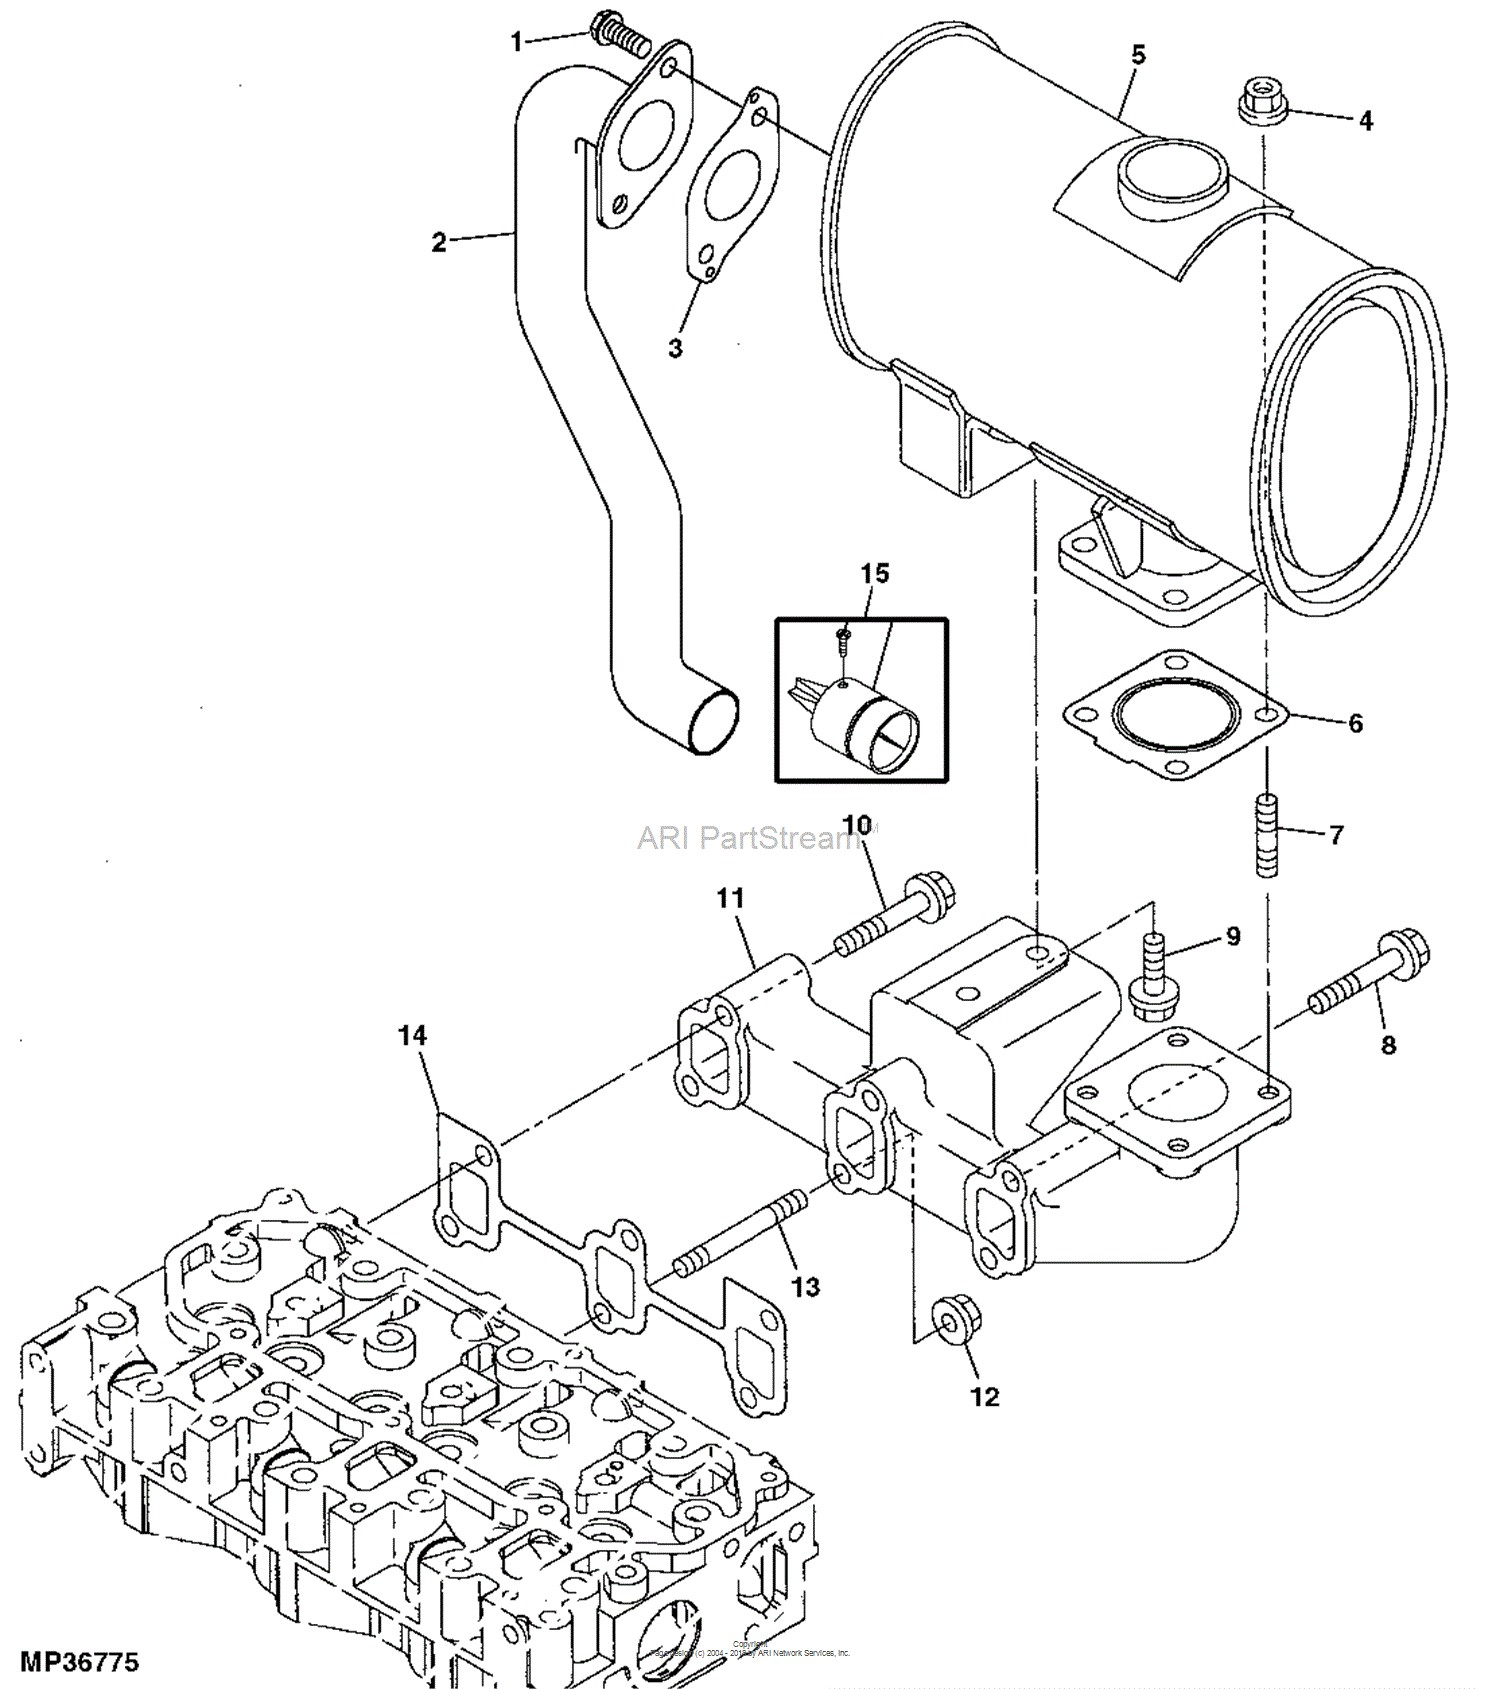 3 Point Hitch Parts Diagram John Deere Parts Diagrams John Deere 2305 Pact Utility Tractor Of 3 Point Hitch Parts Diagram John Deere Parts Diagrams John Deere X465 Garden Tractor Pc9109